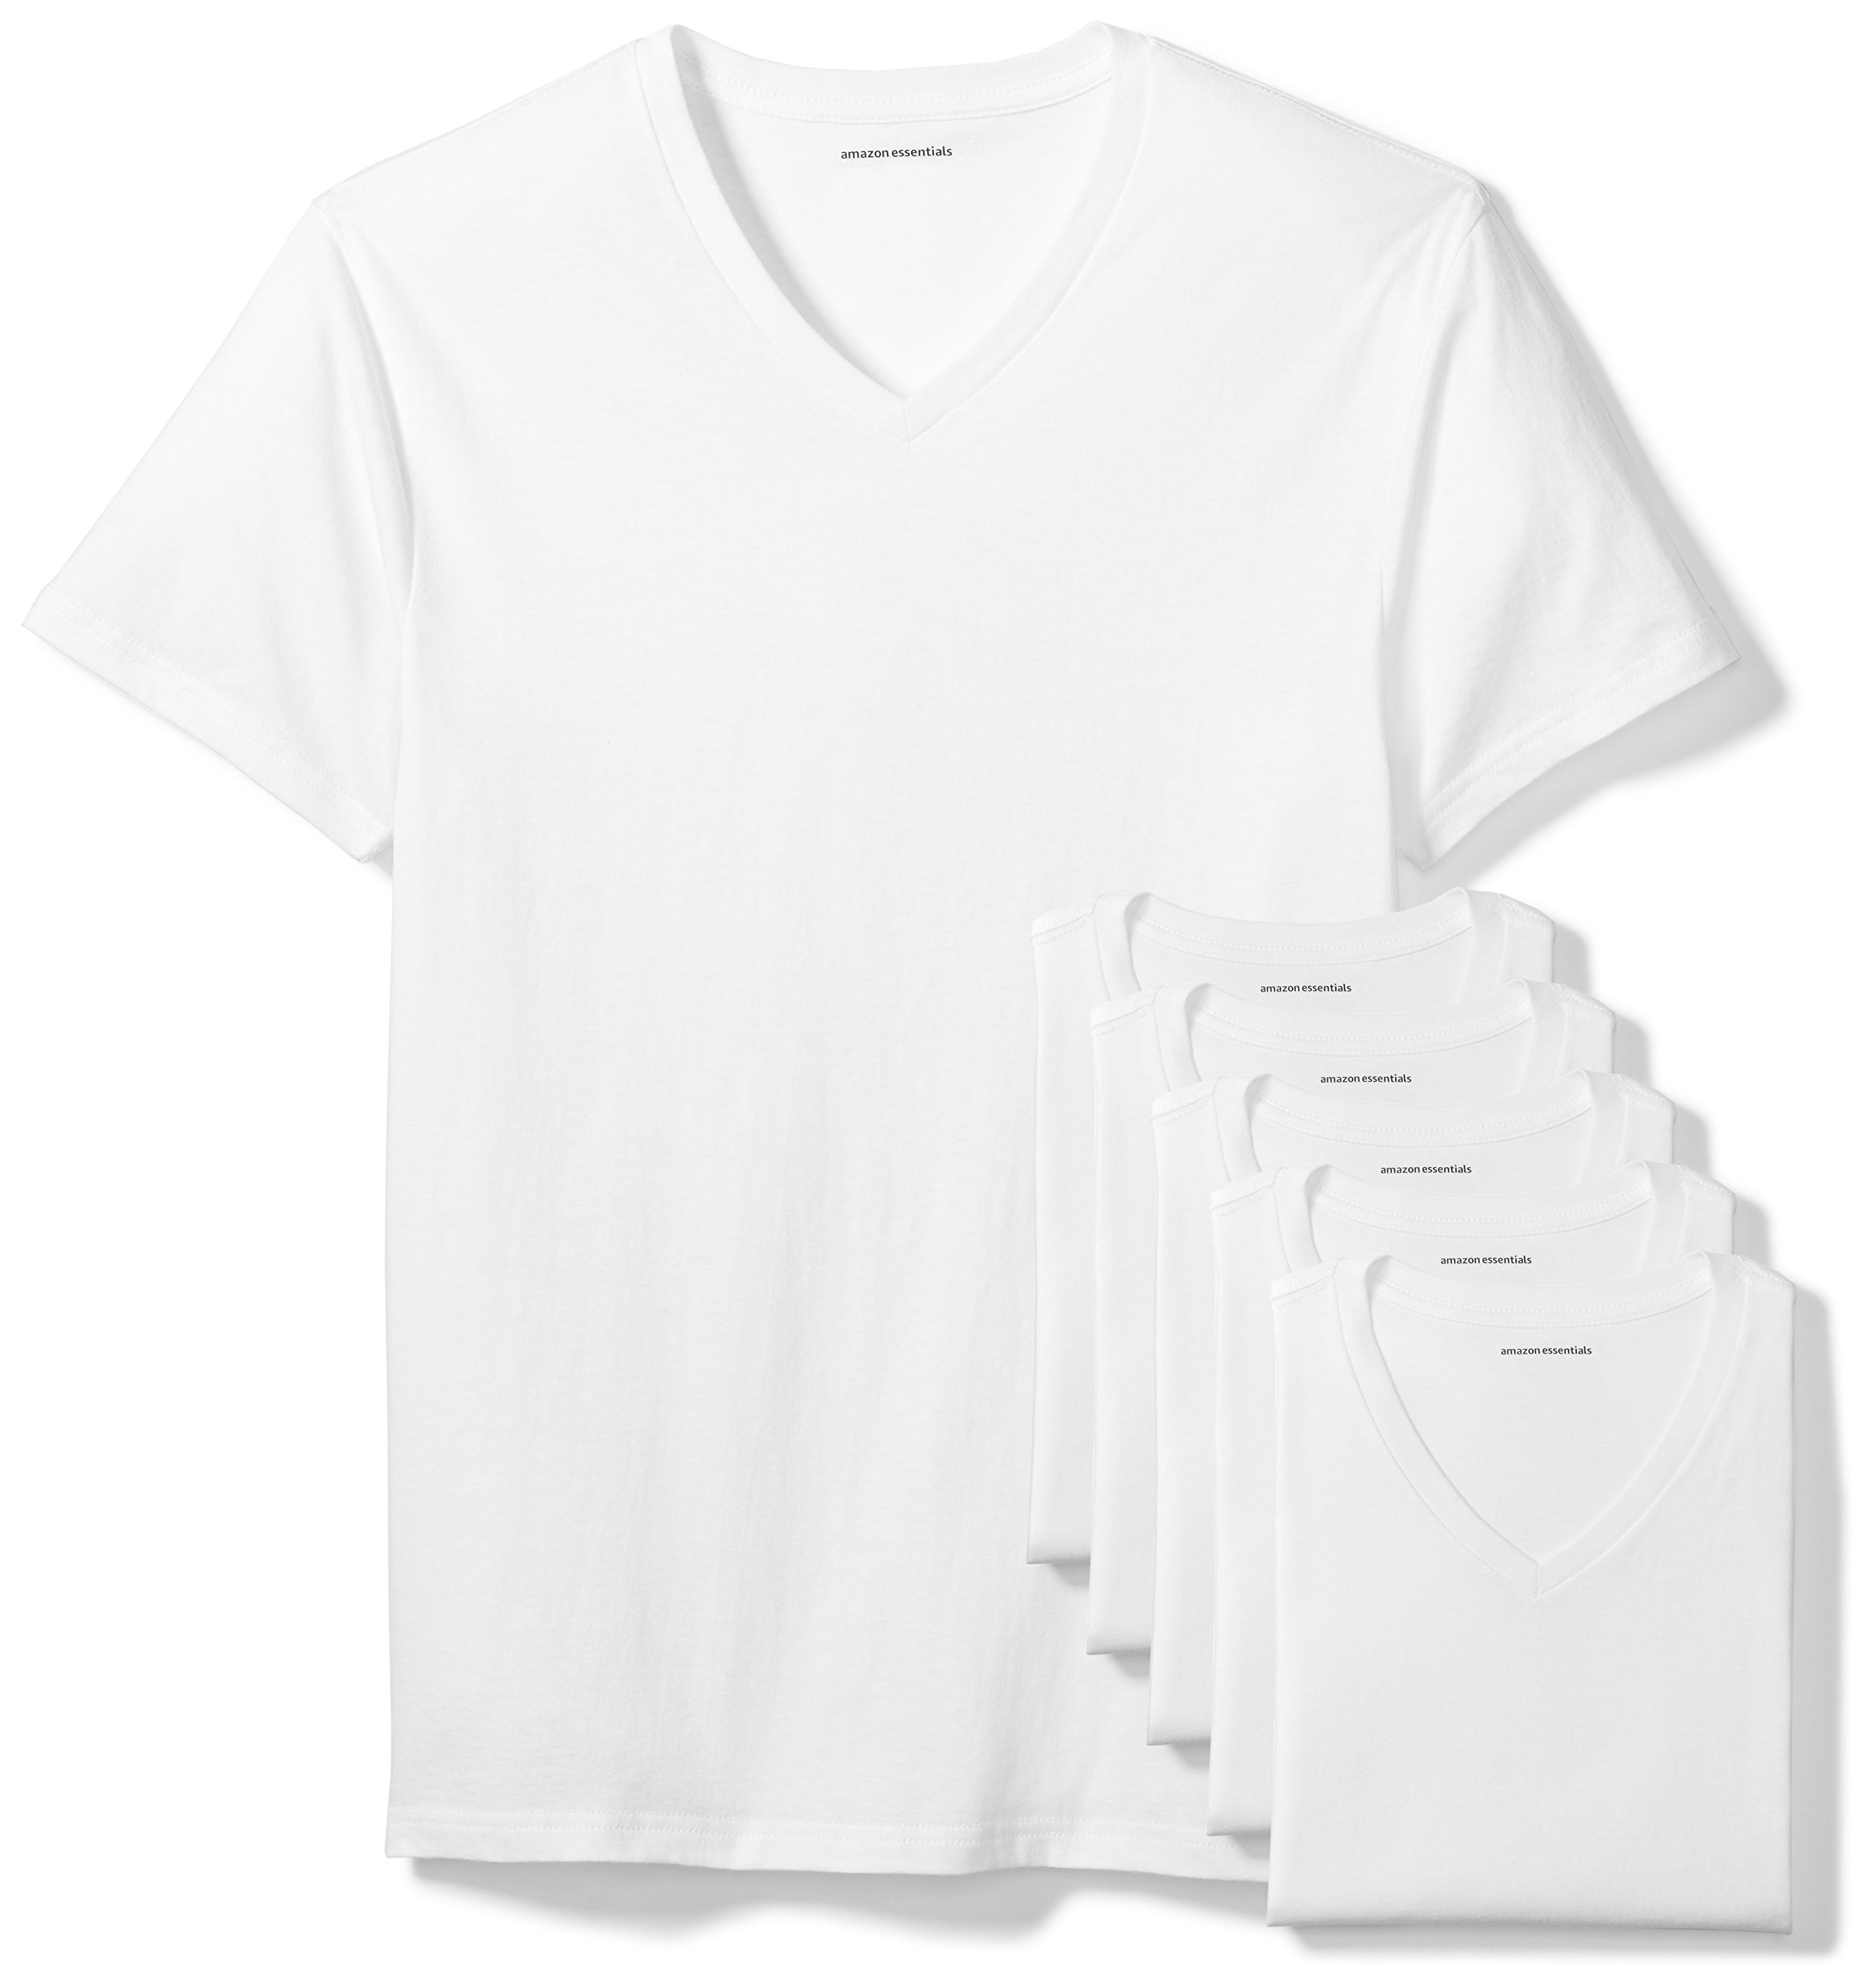 Amazon Essentials Men's 6-Pack V-Neck Undershirts, White, Large